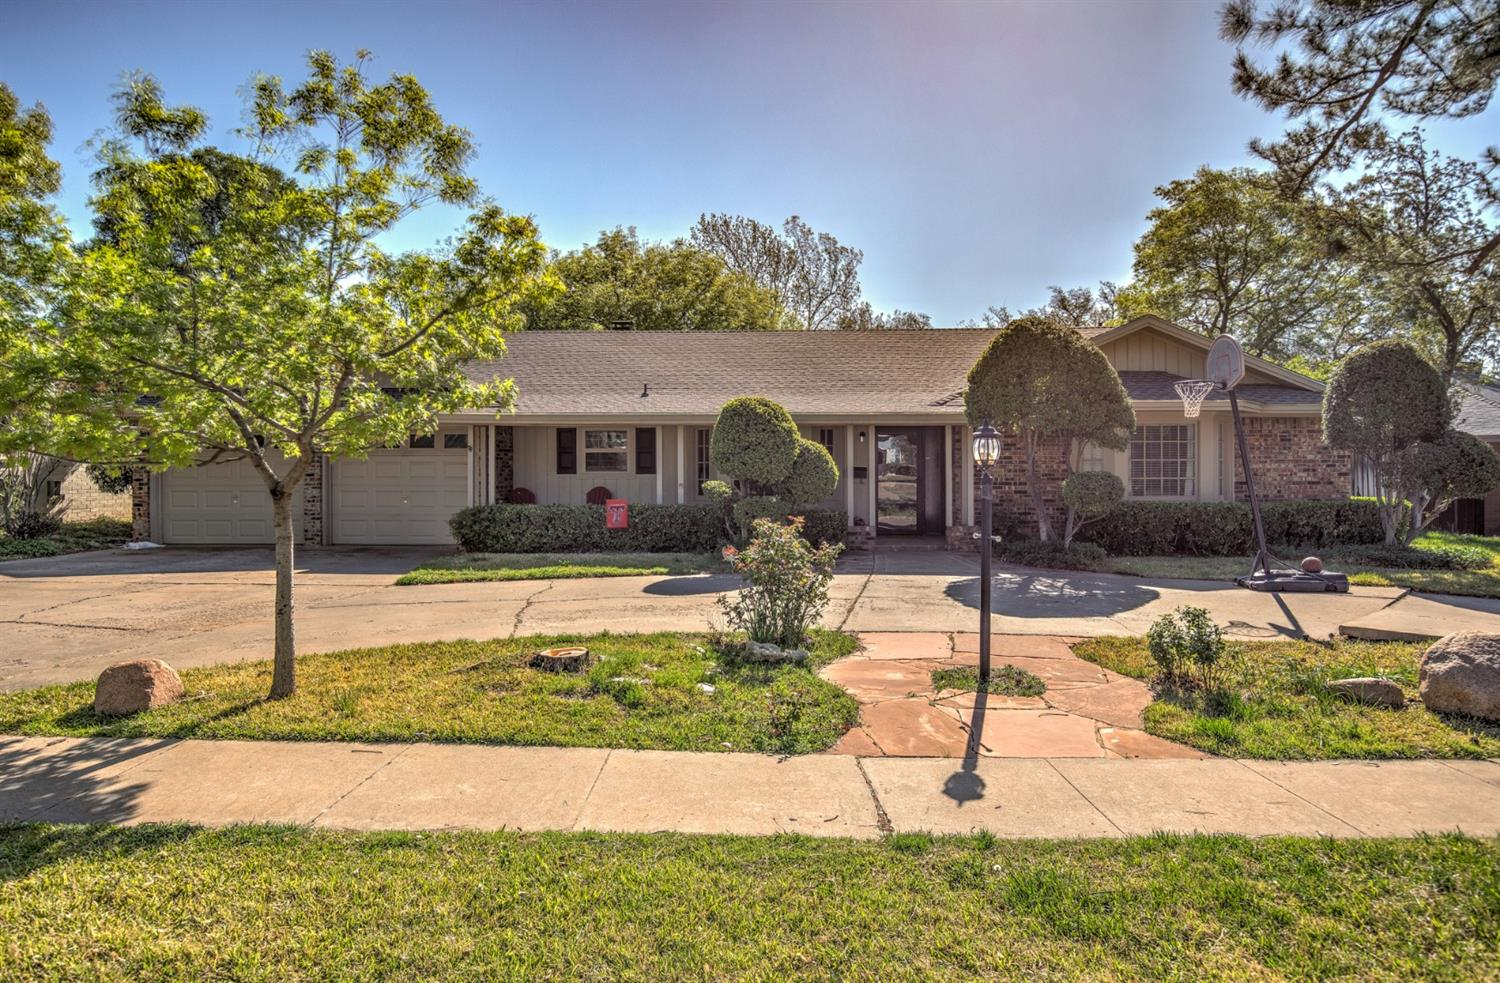 3506 63rd Drive, Lubbock, Texas